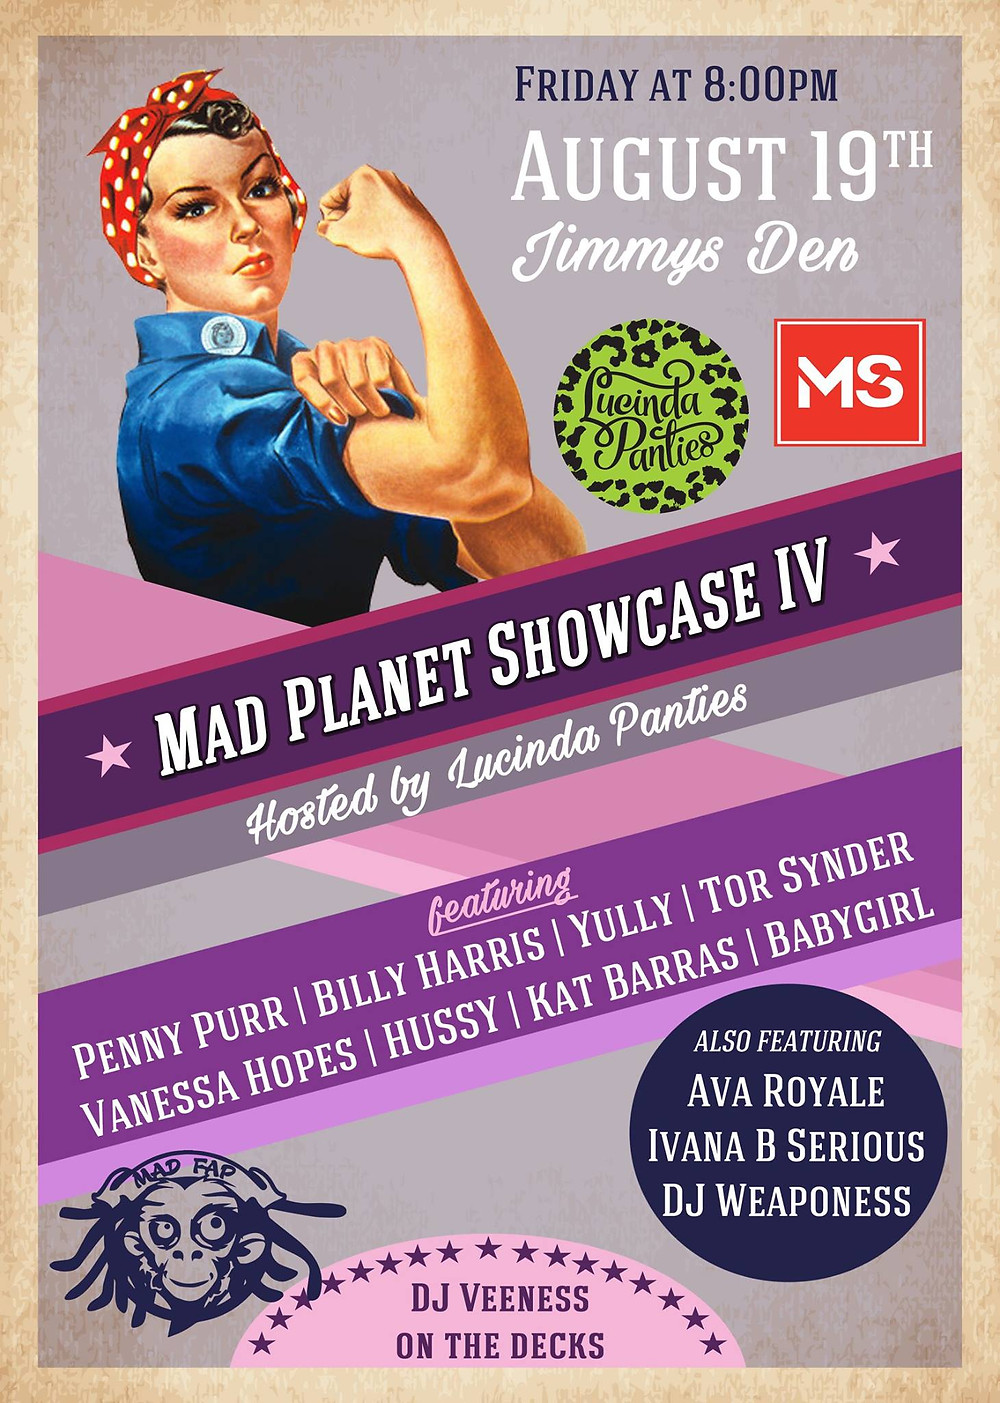 Mad Planet Showcase hosted by Lucinda Panties